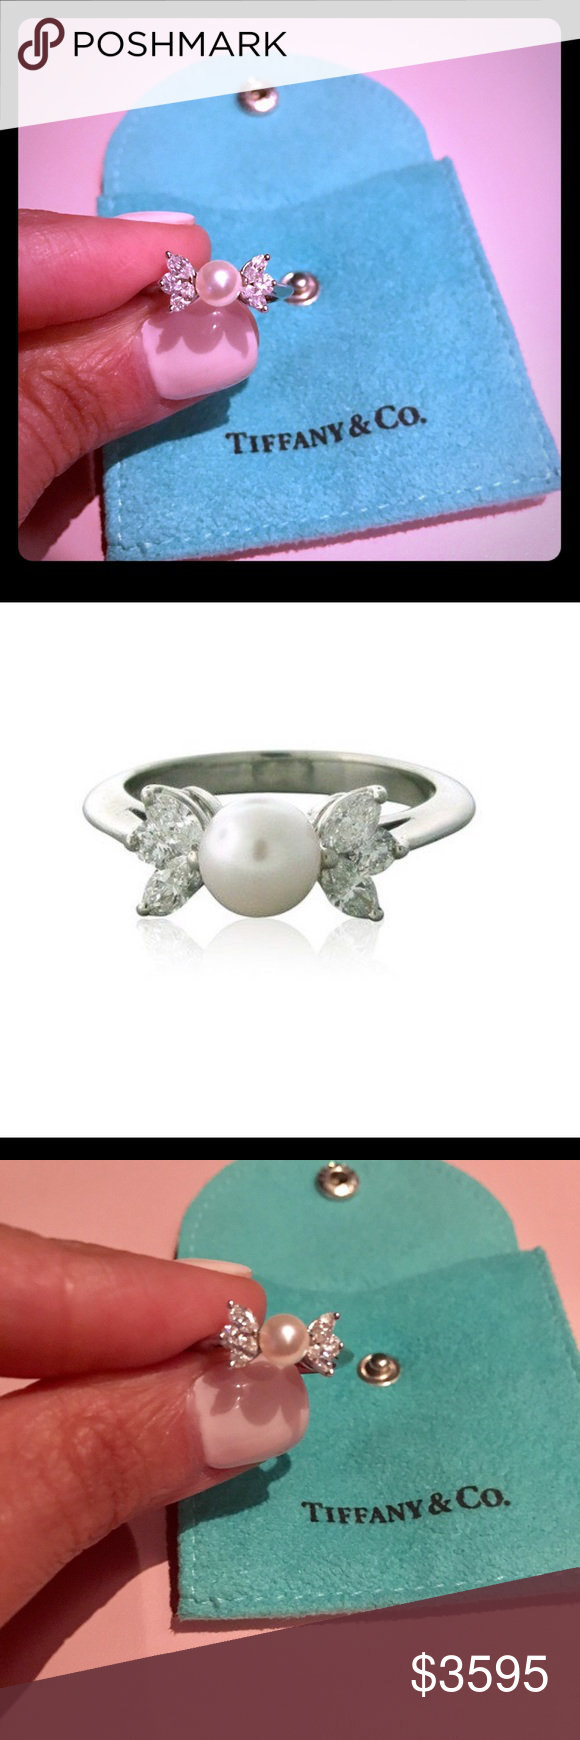 51b9abe1c SOLD ON TRADESY Tiffany & Co Diamond Victoria Ring | My Posh Picks ...